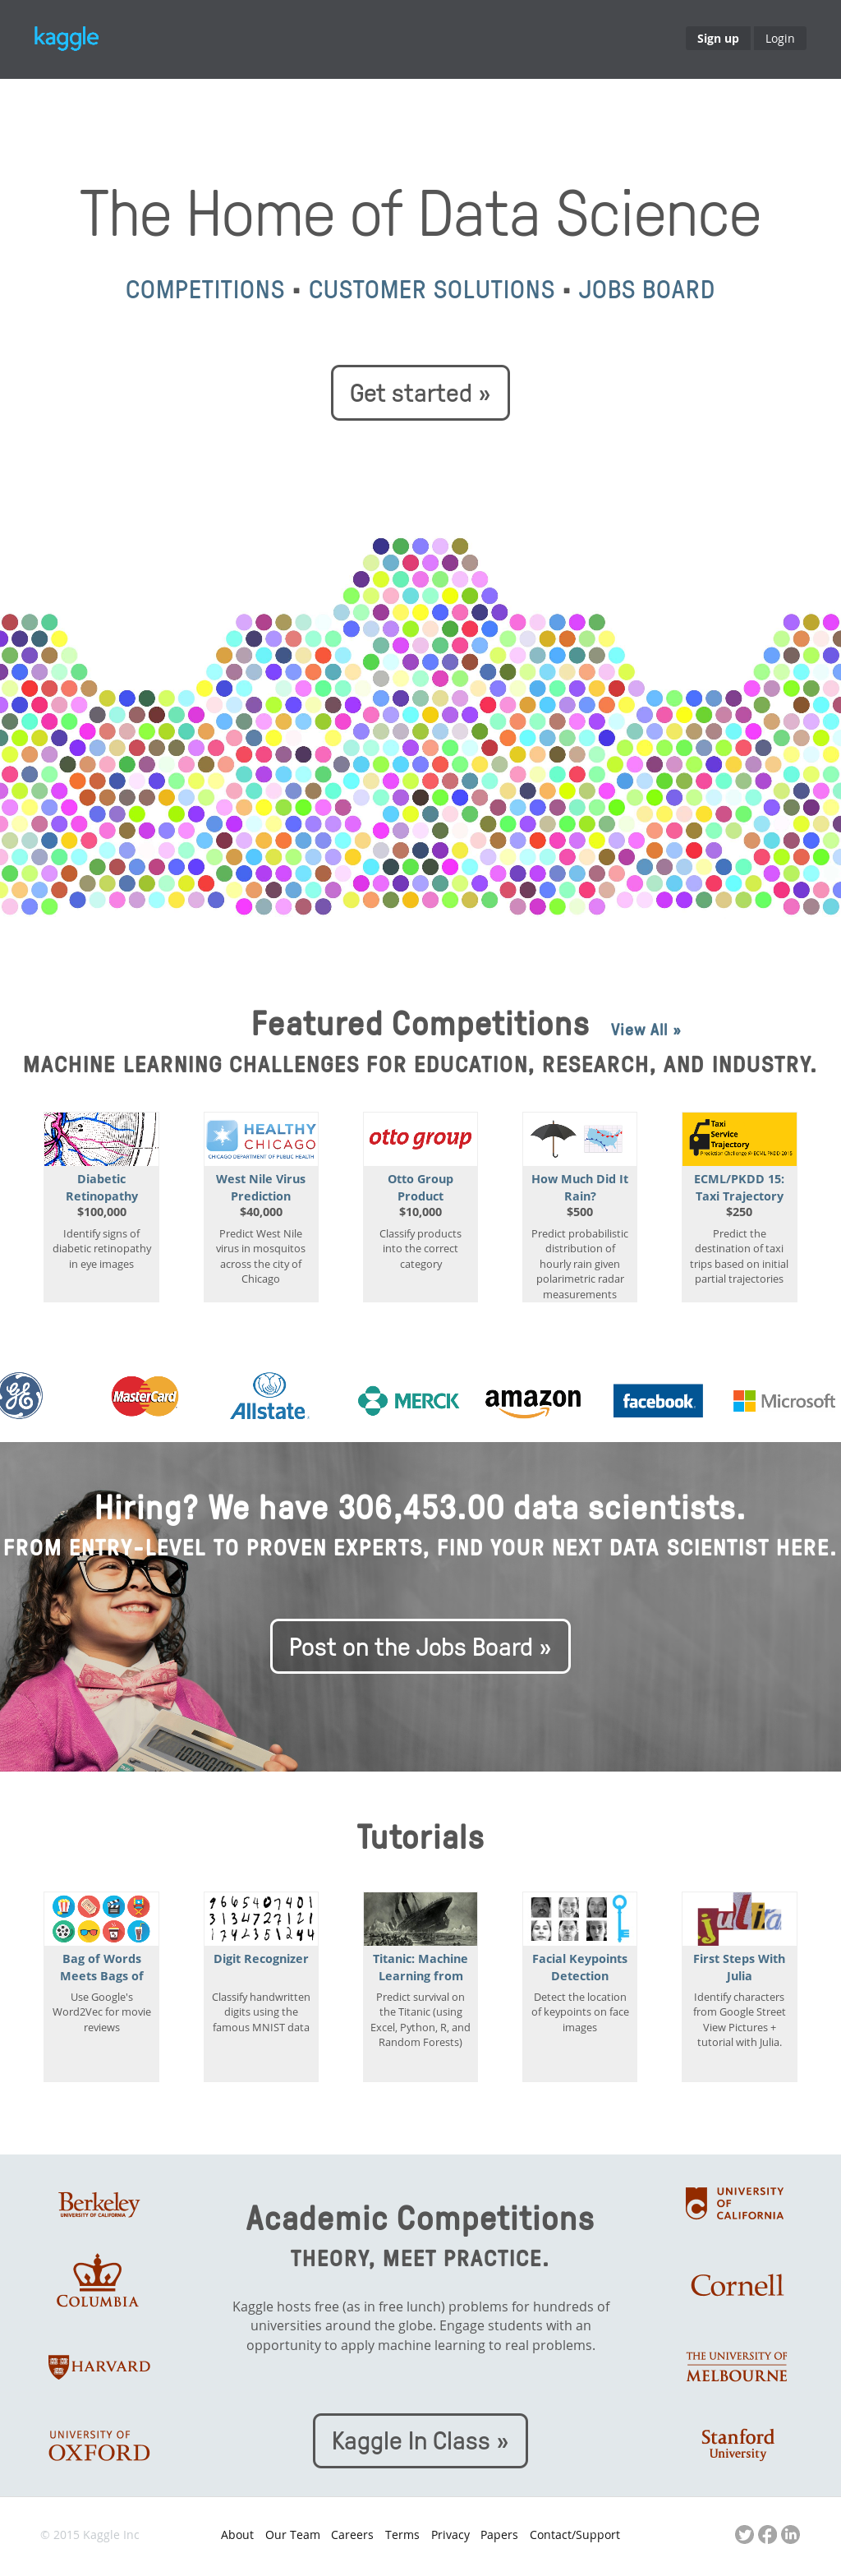 Owler Reports - Kaggle Blog Integer Sequence Learning Competition